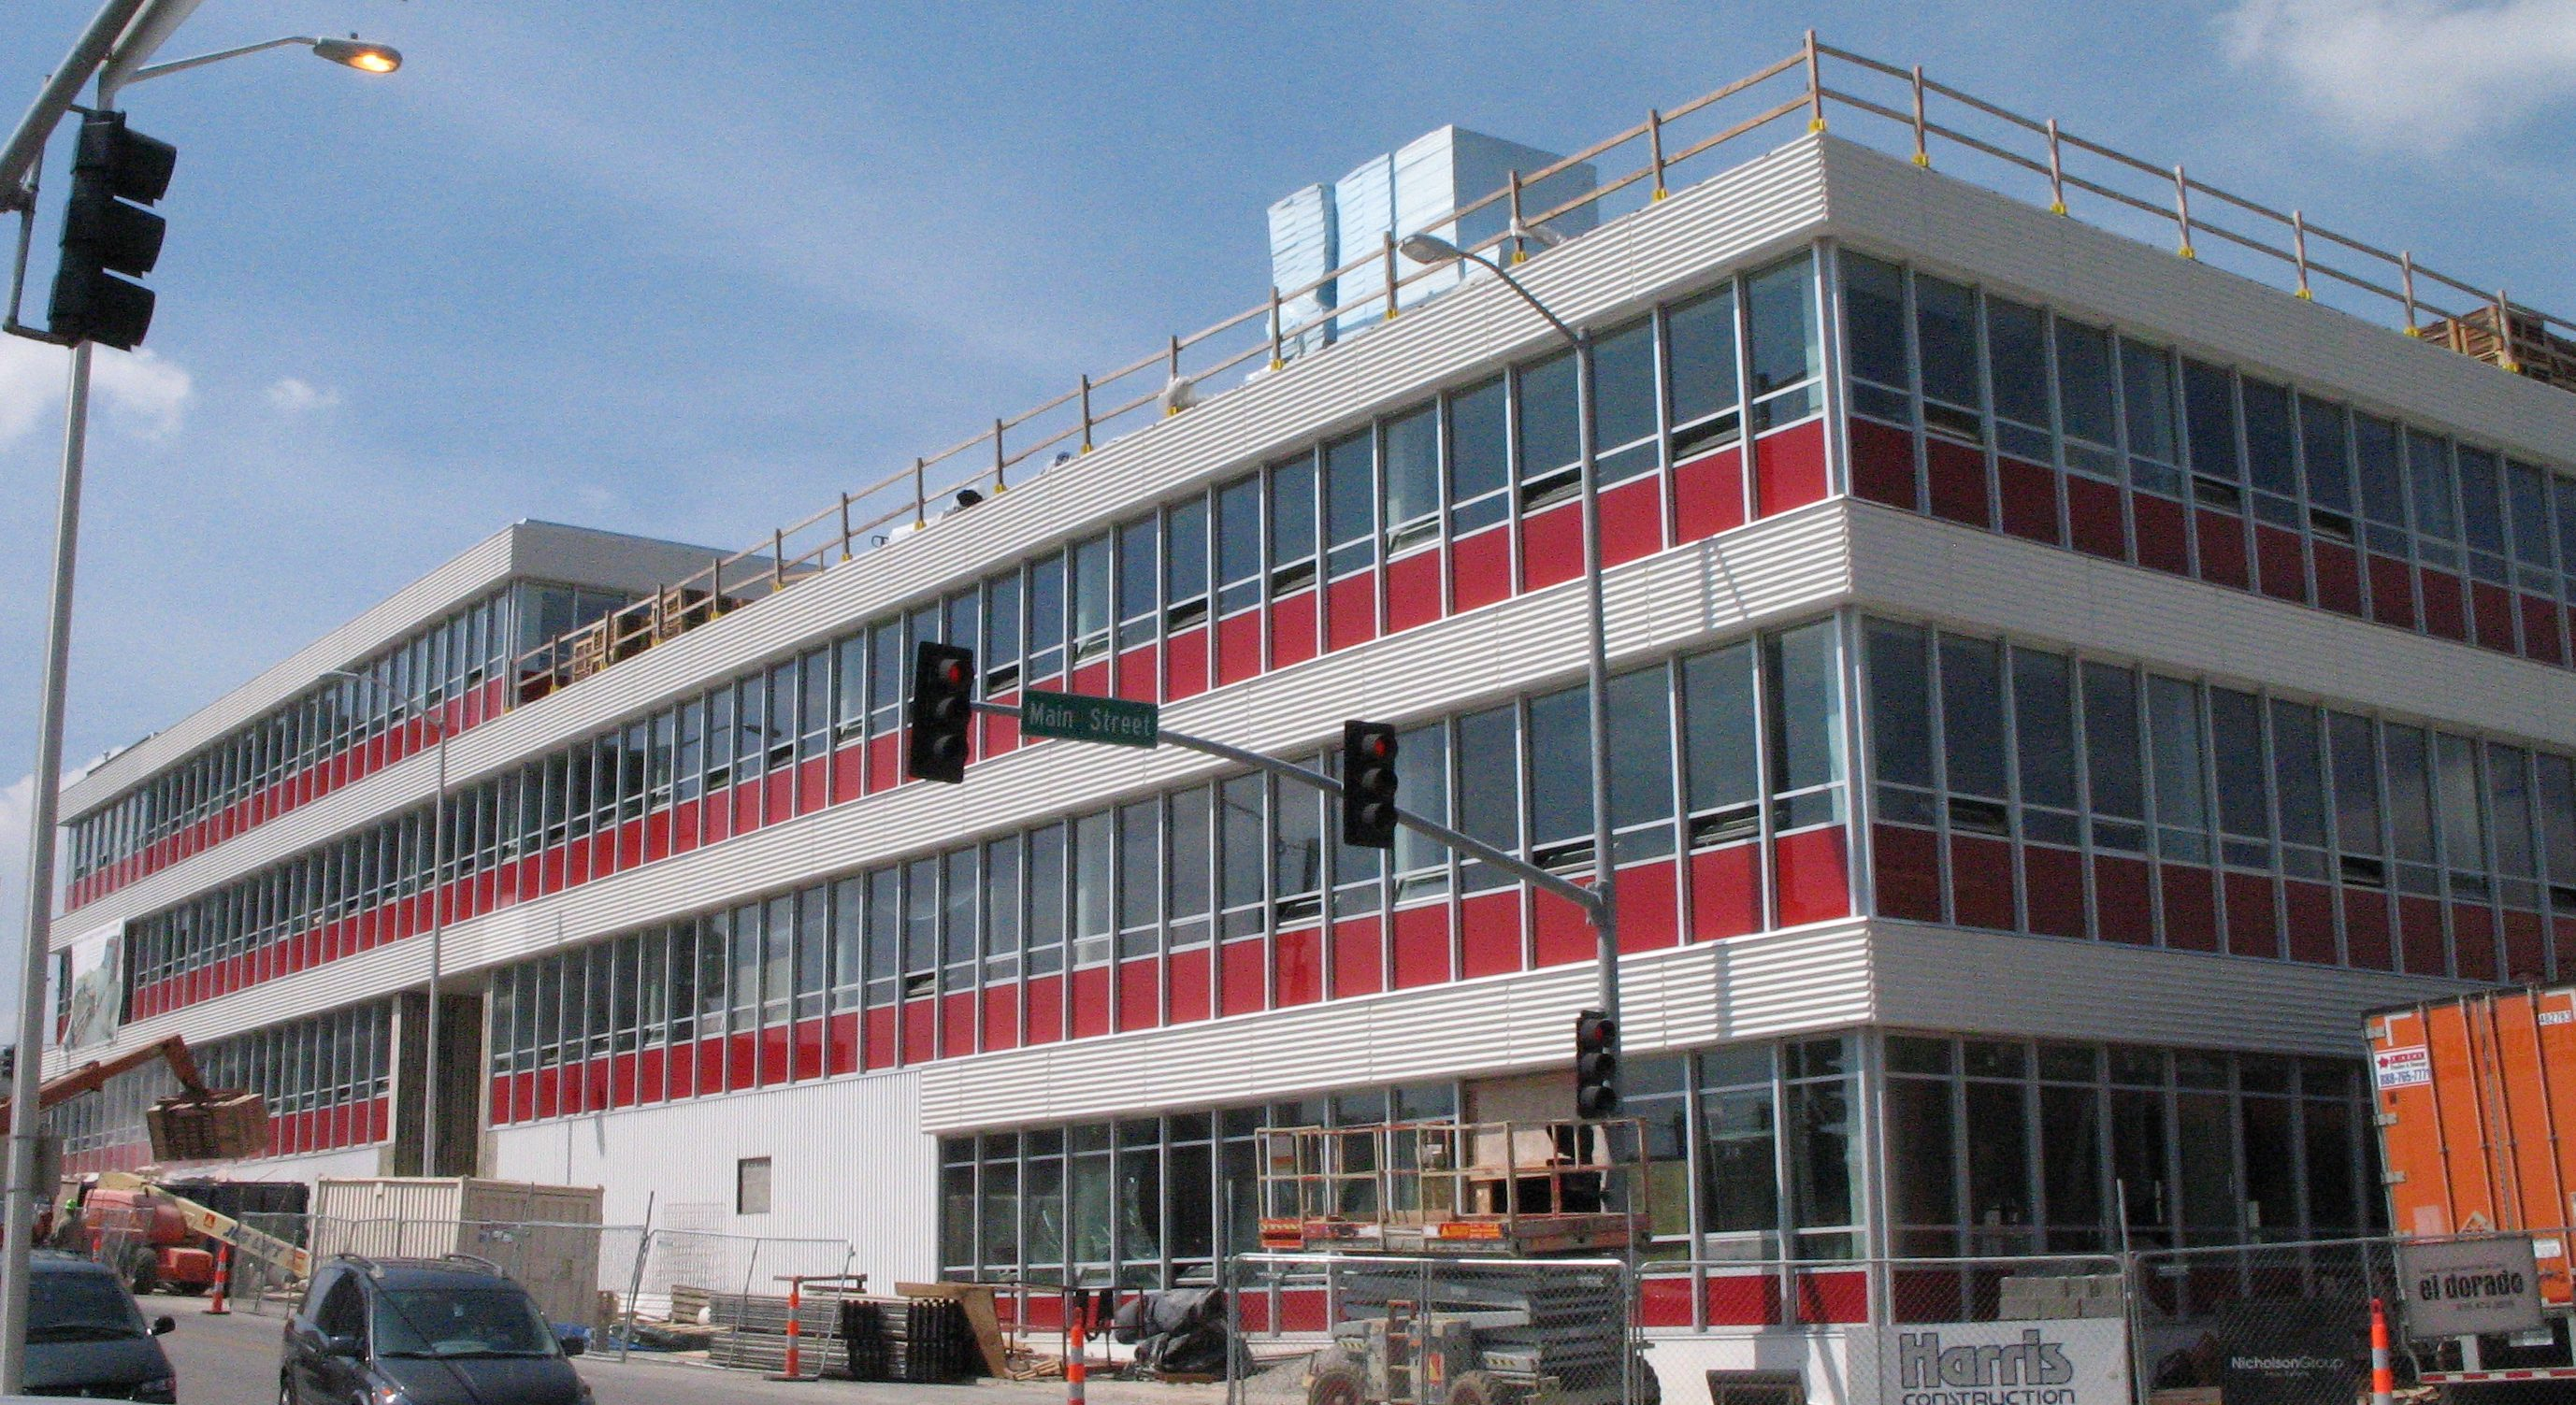 TWA Headquarters in Kansas City being renovated. Photo in August 2006 by poster.